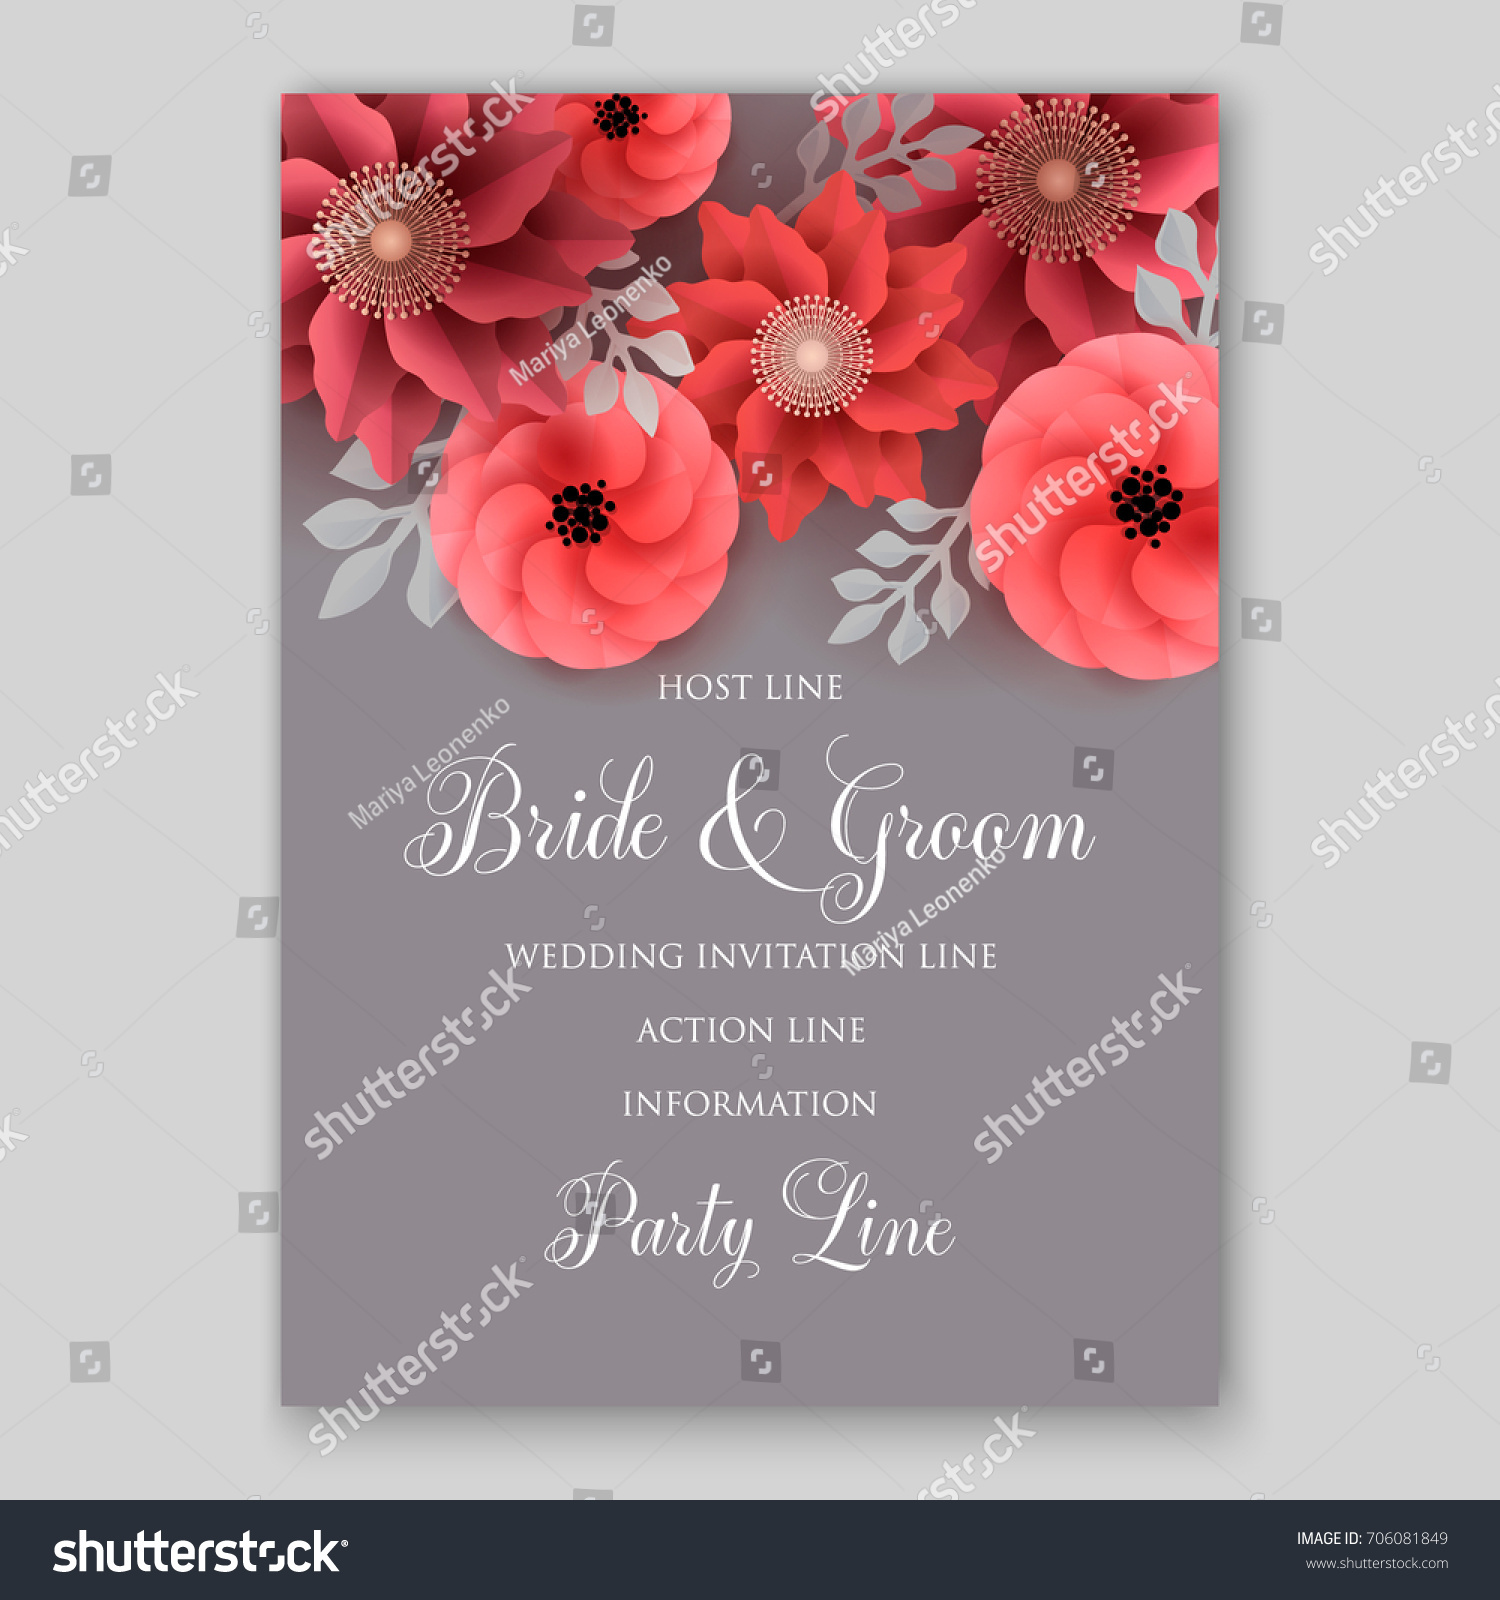 Vector big paper flower origami rose stock vector royalty free vector big paper flower origami rose anemone peony wedding invitation floral card template izmirmasajfo